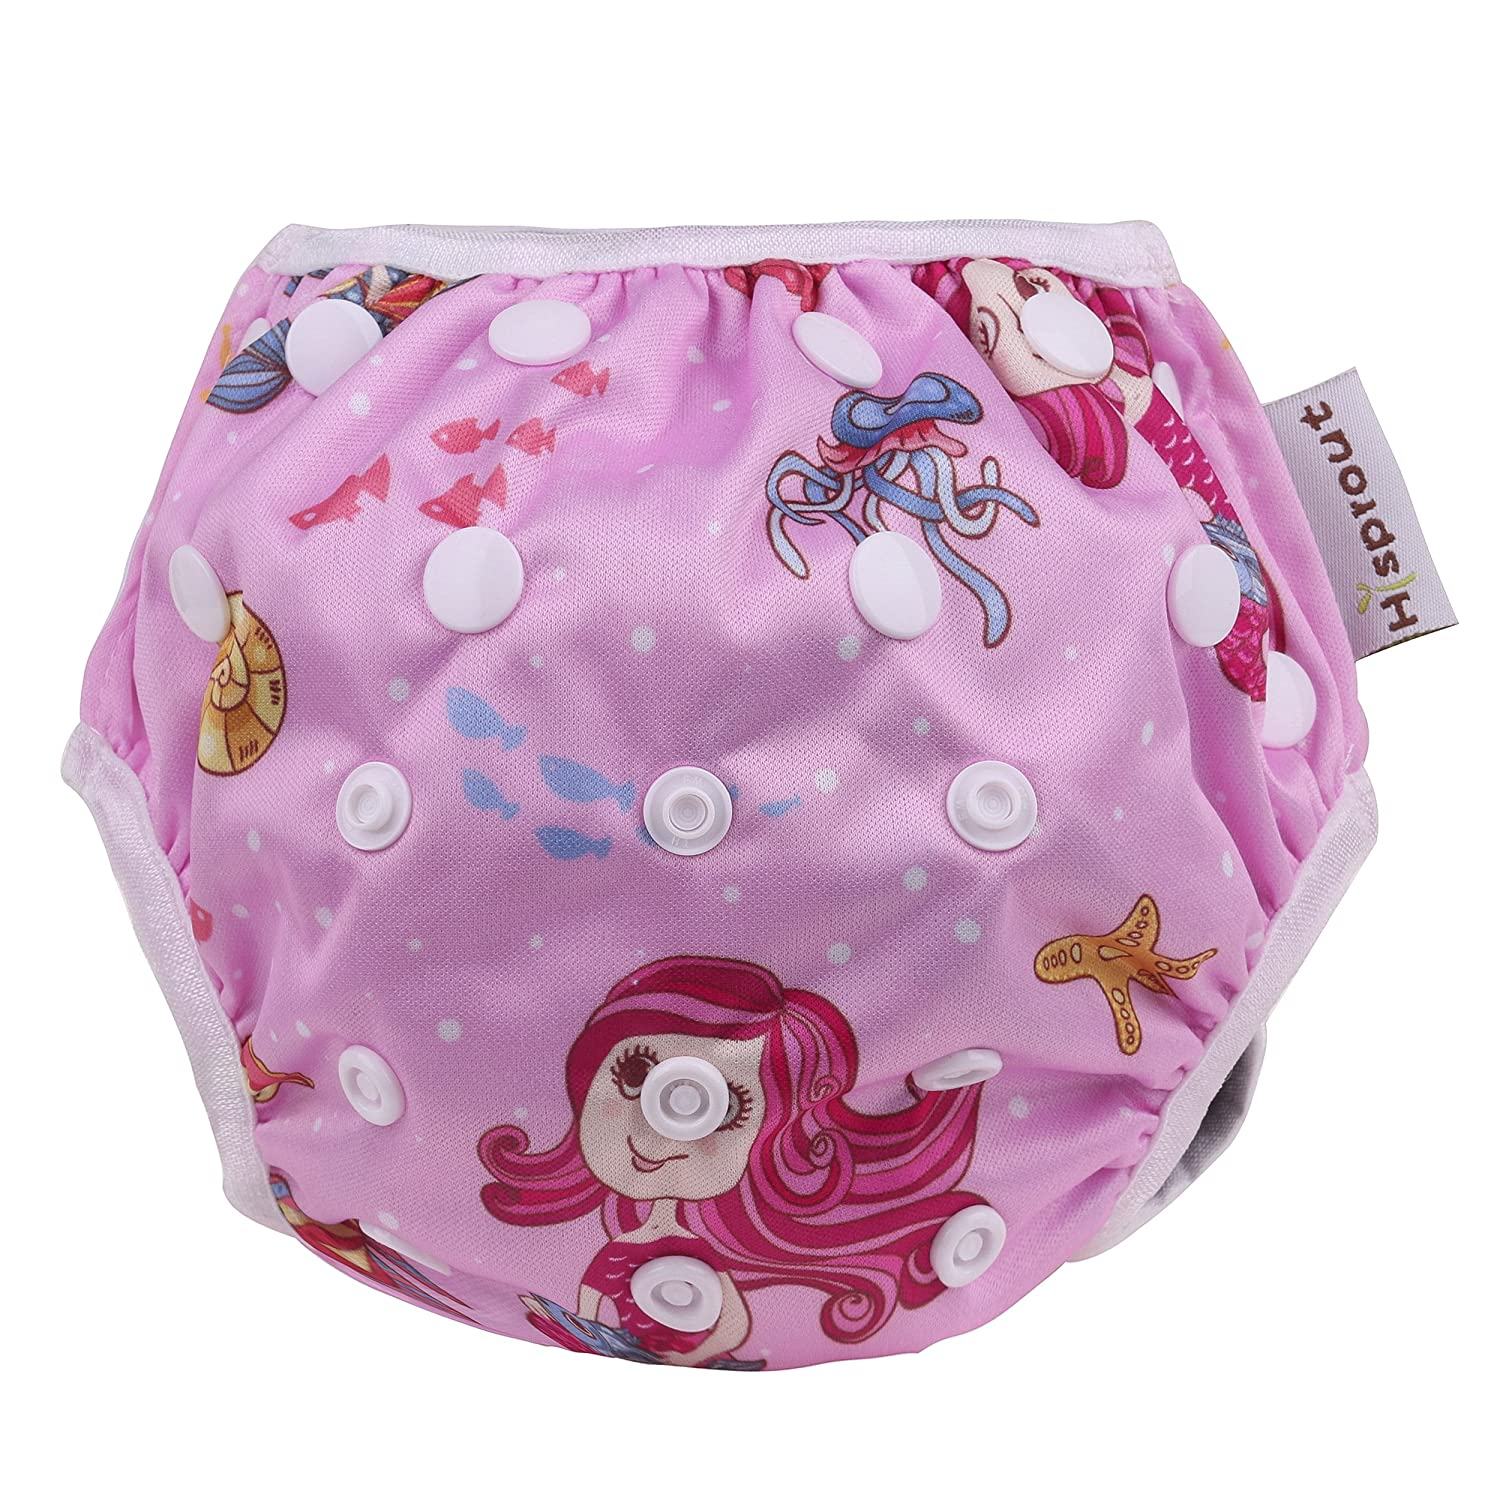 Cideros Waterproof Reusable Swim Diaper One Size Nappy for Babies Infants Leakproof Swimming Shorts Breathable Knitted Fabric Watersport Swimwear - Dolphin